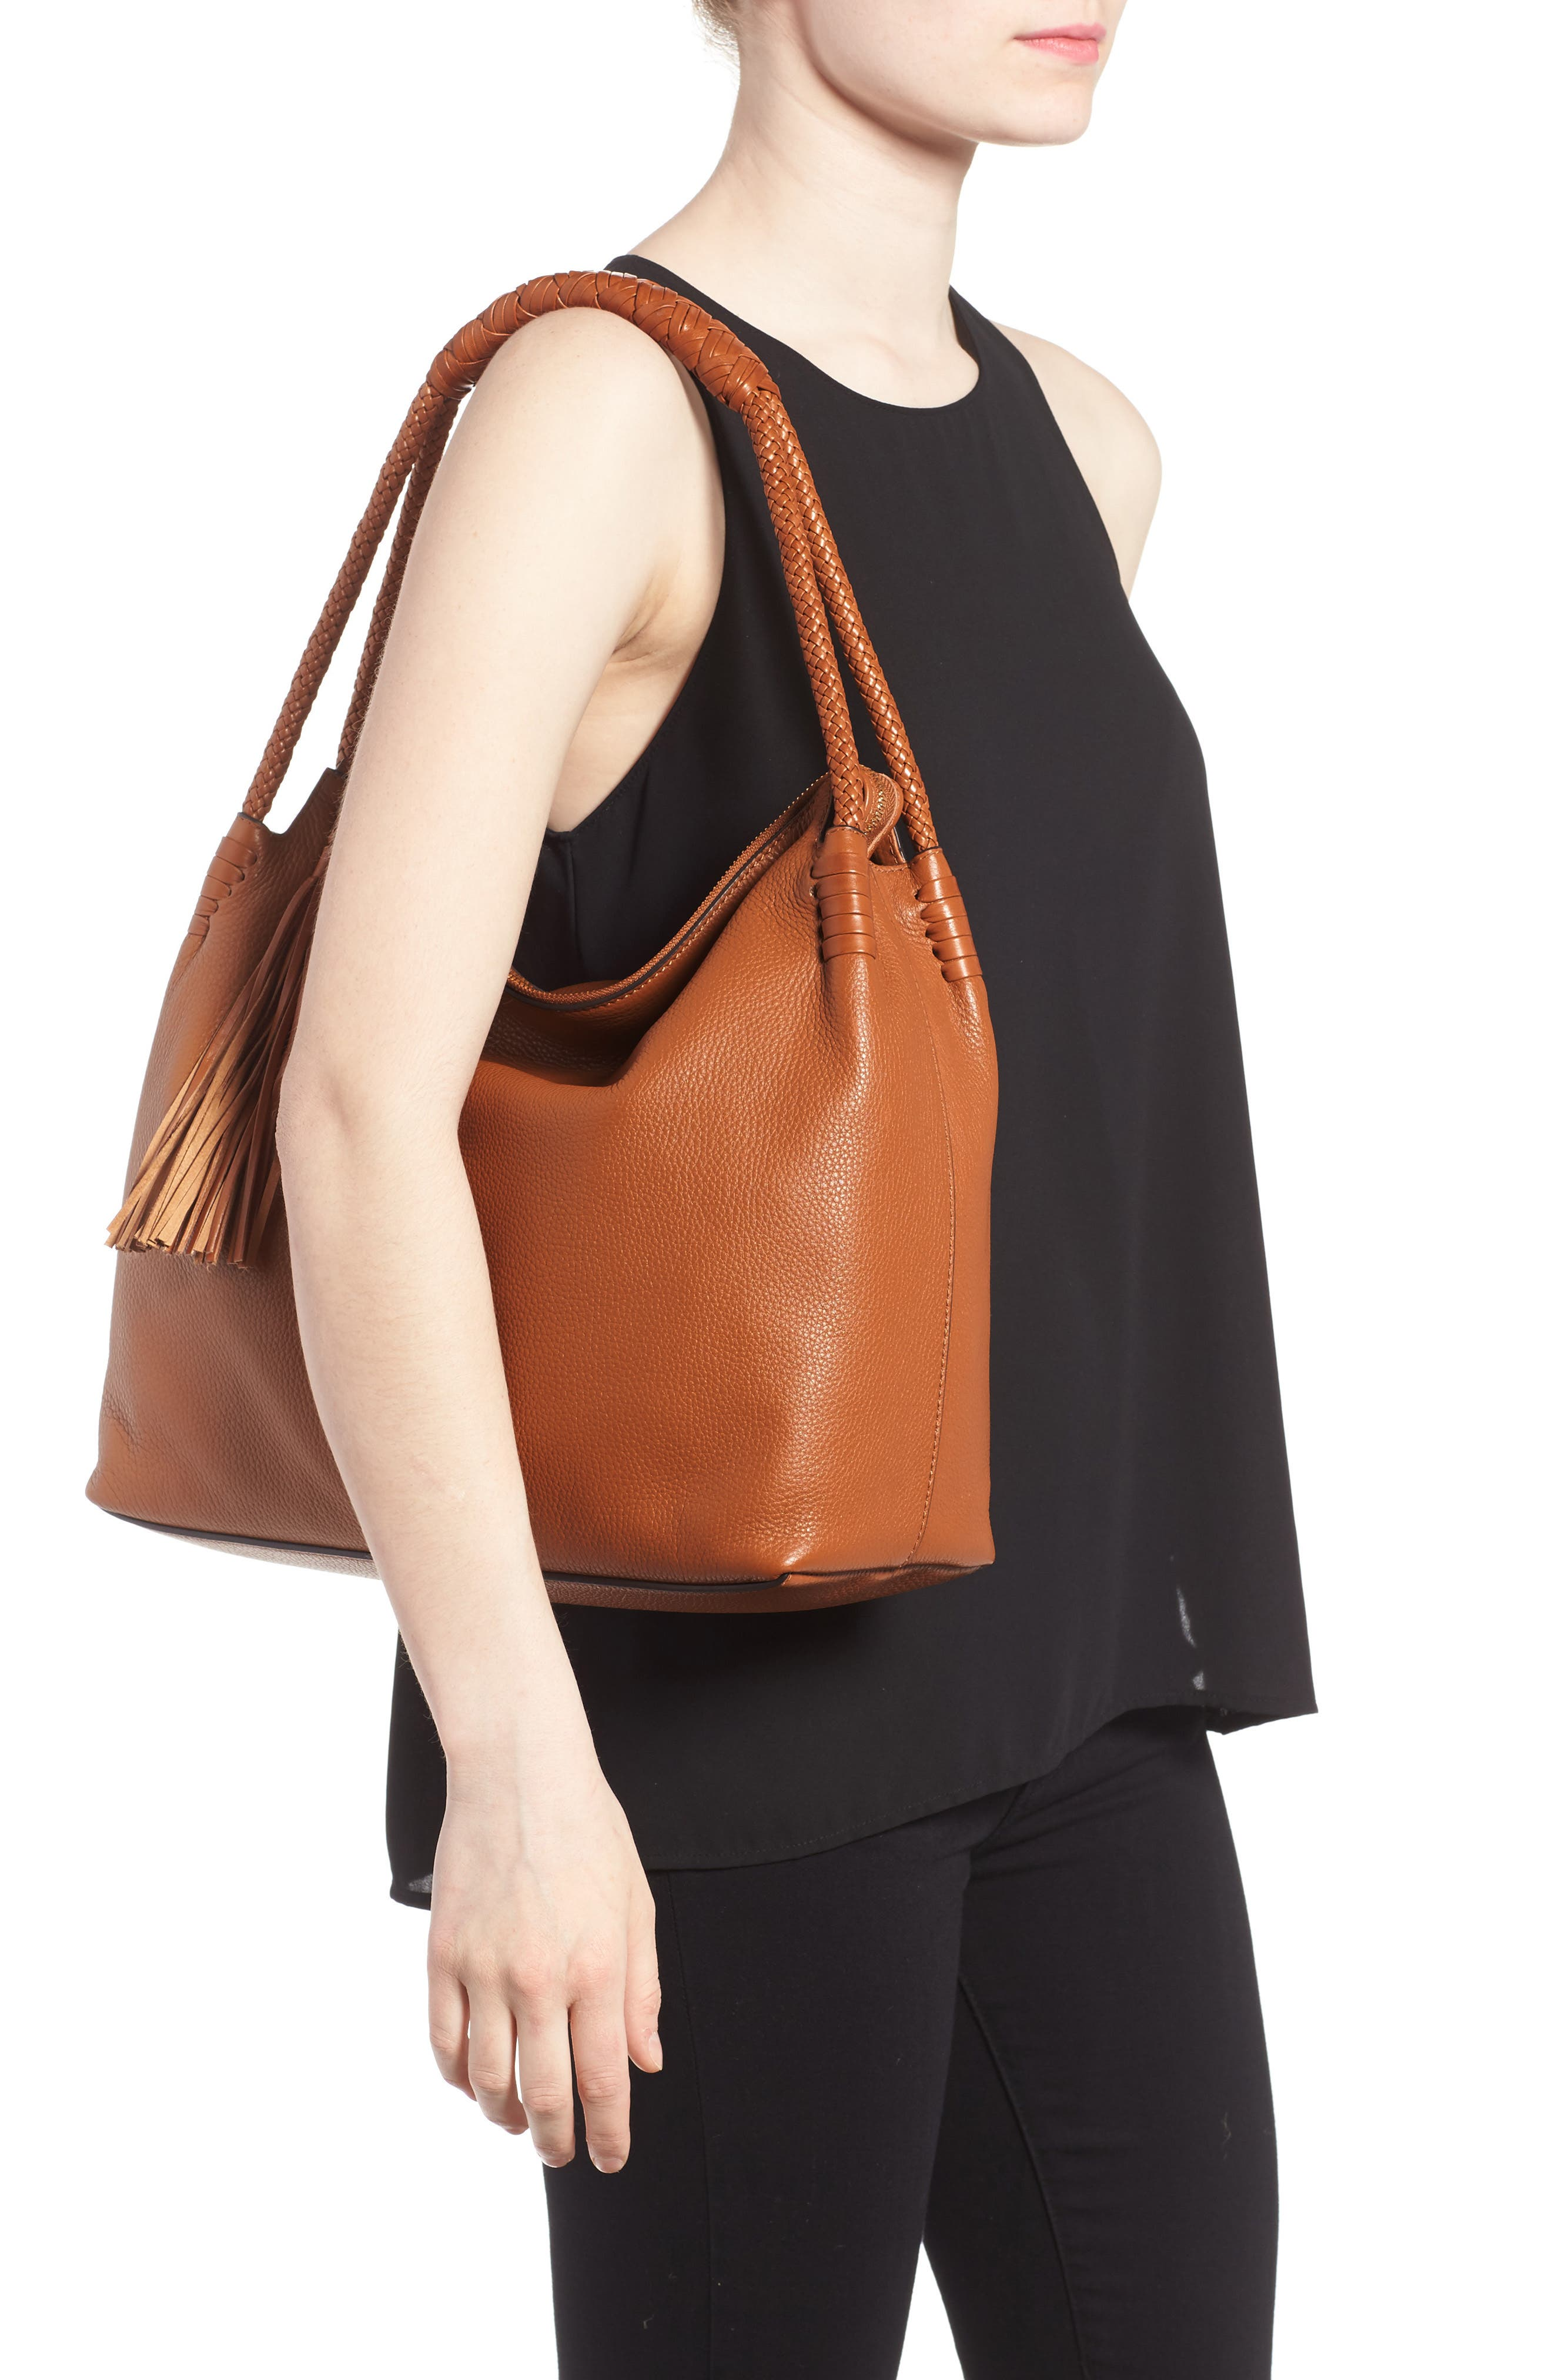 Taylor Leather Hobo Bag,                             Alternate thumbnail 2, color,                             Saddle